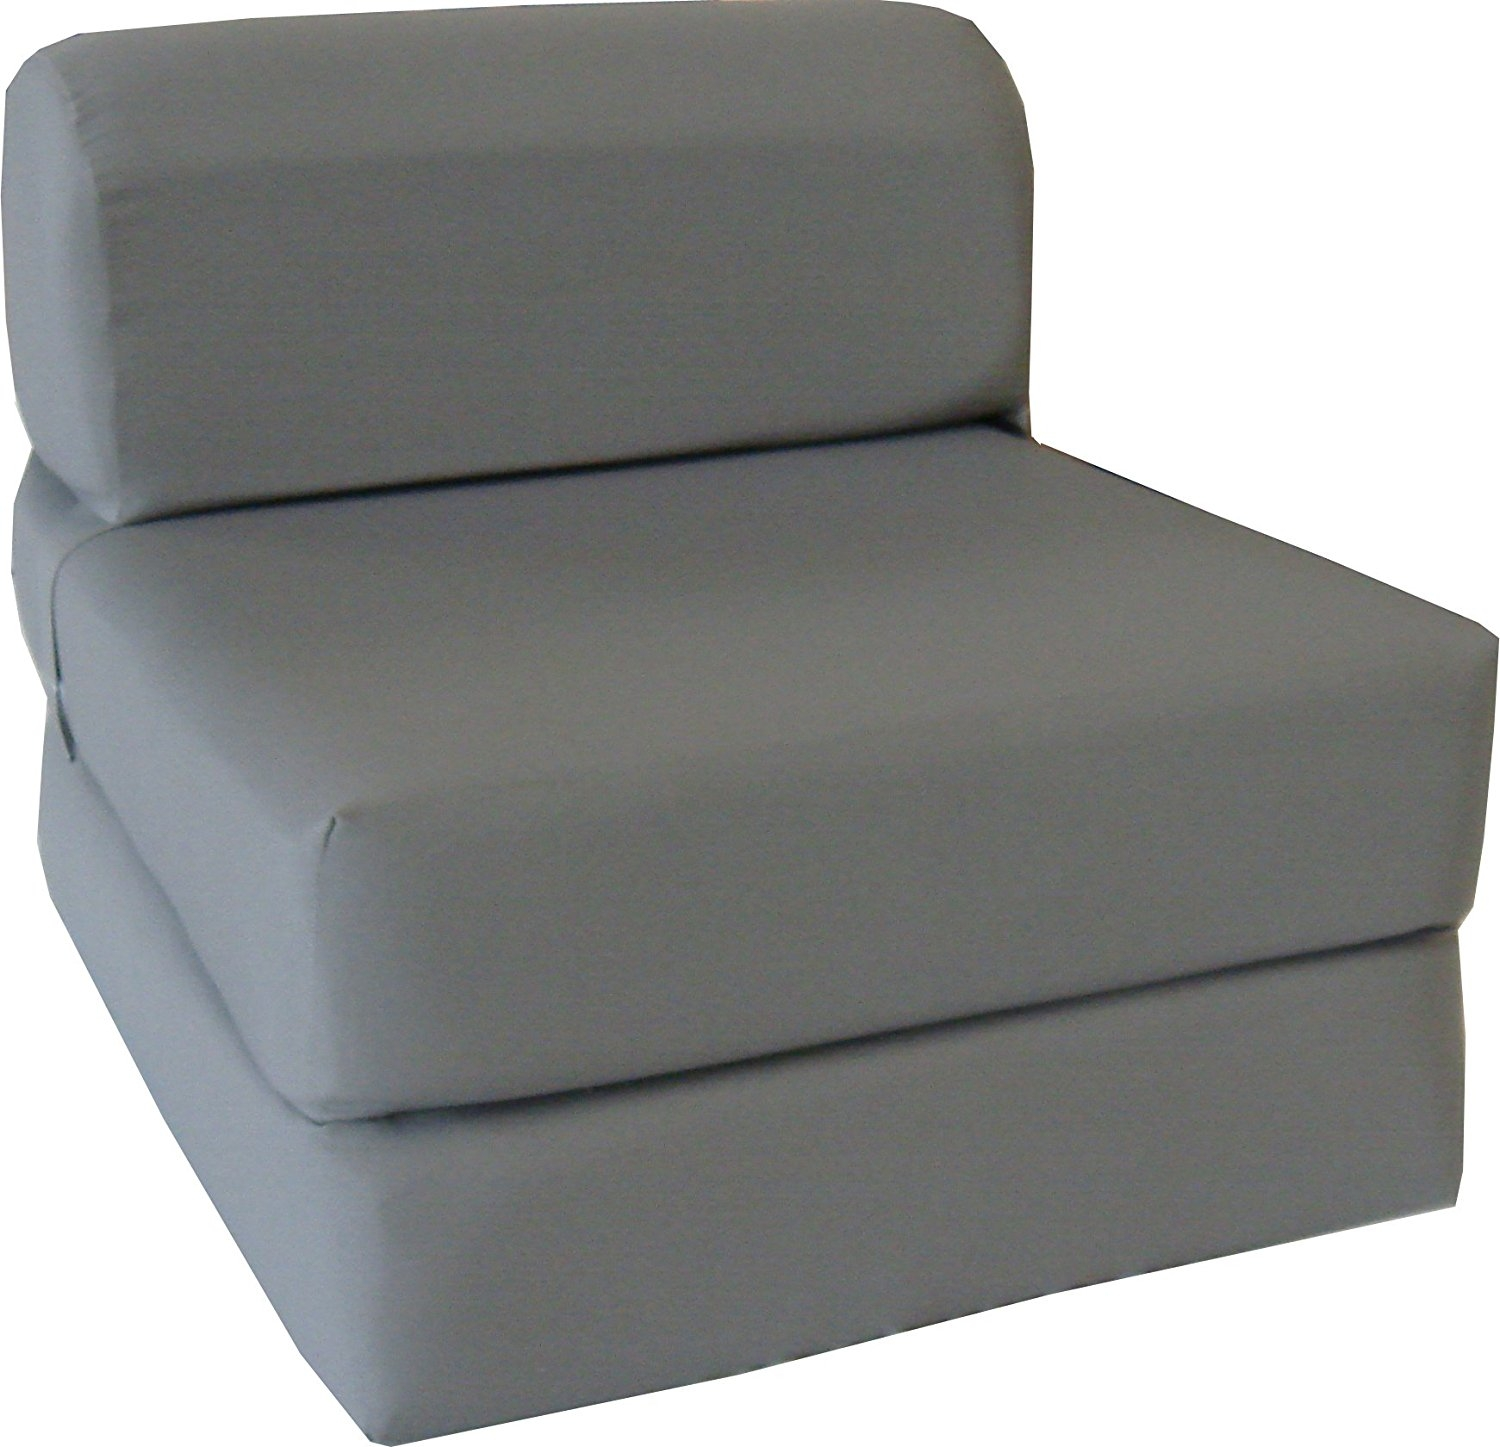 Amazon Gray Sleeper Chair Folding Foam Bed Sized 6 Thick X Within Cheap Single Sofa Bed Chairs (Image 4 of 15)